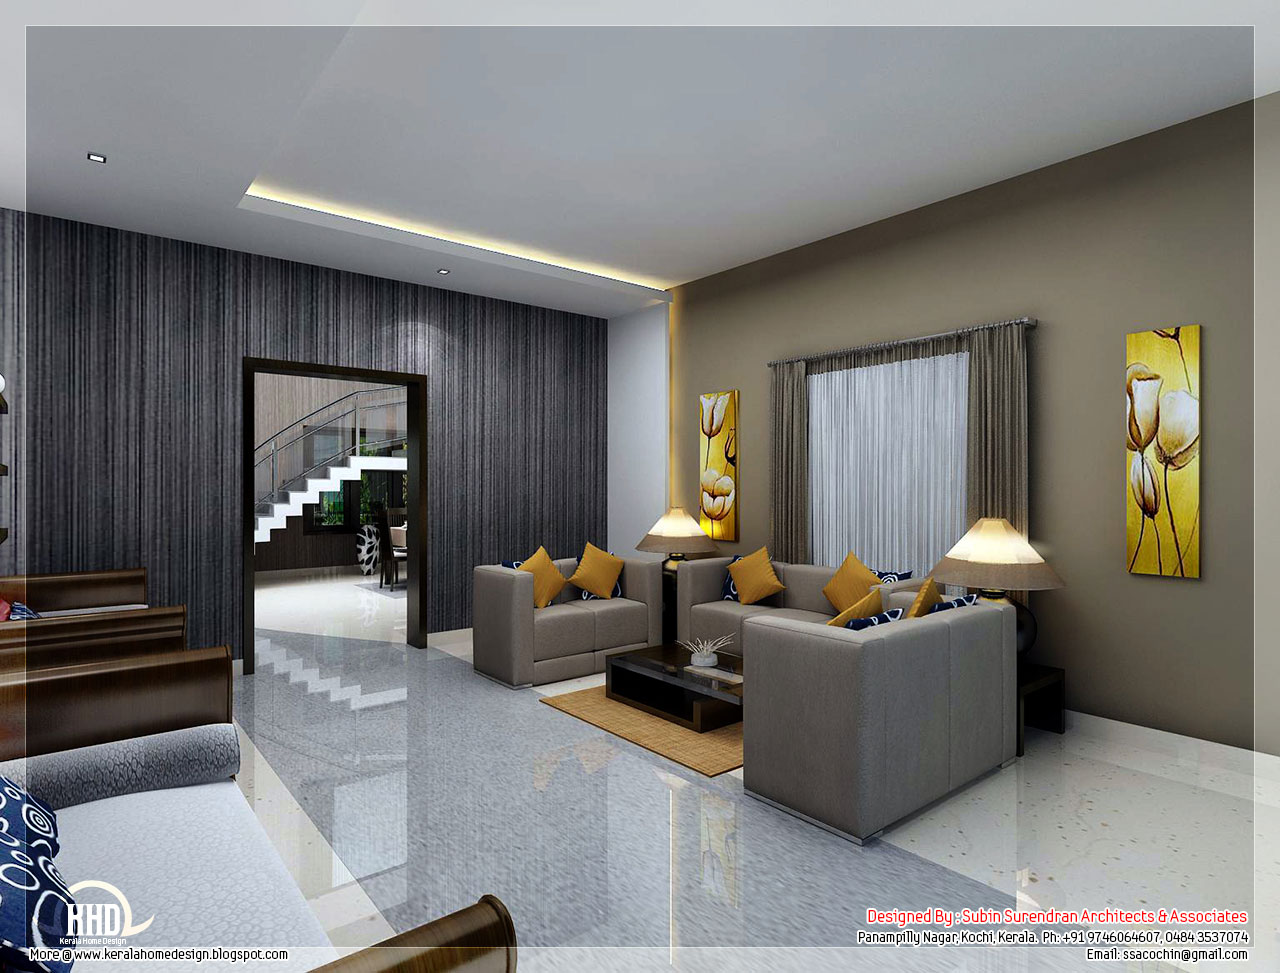 Awesome 3d interior renderings kerala house design - Pictures of interior design living rooms ...